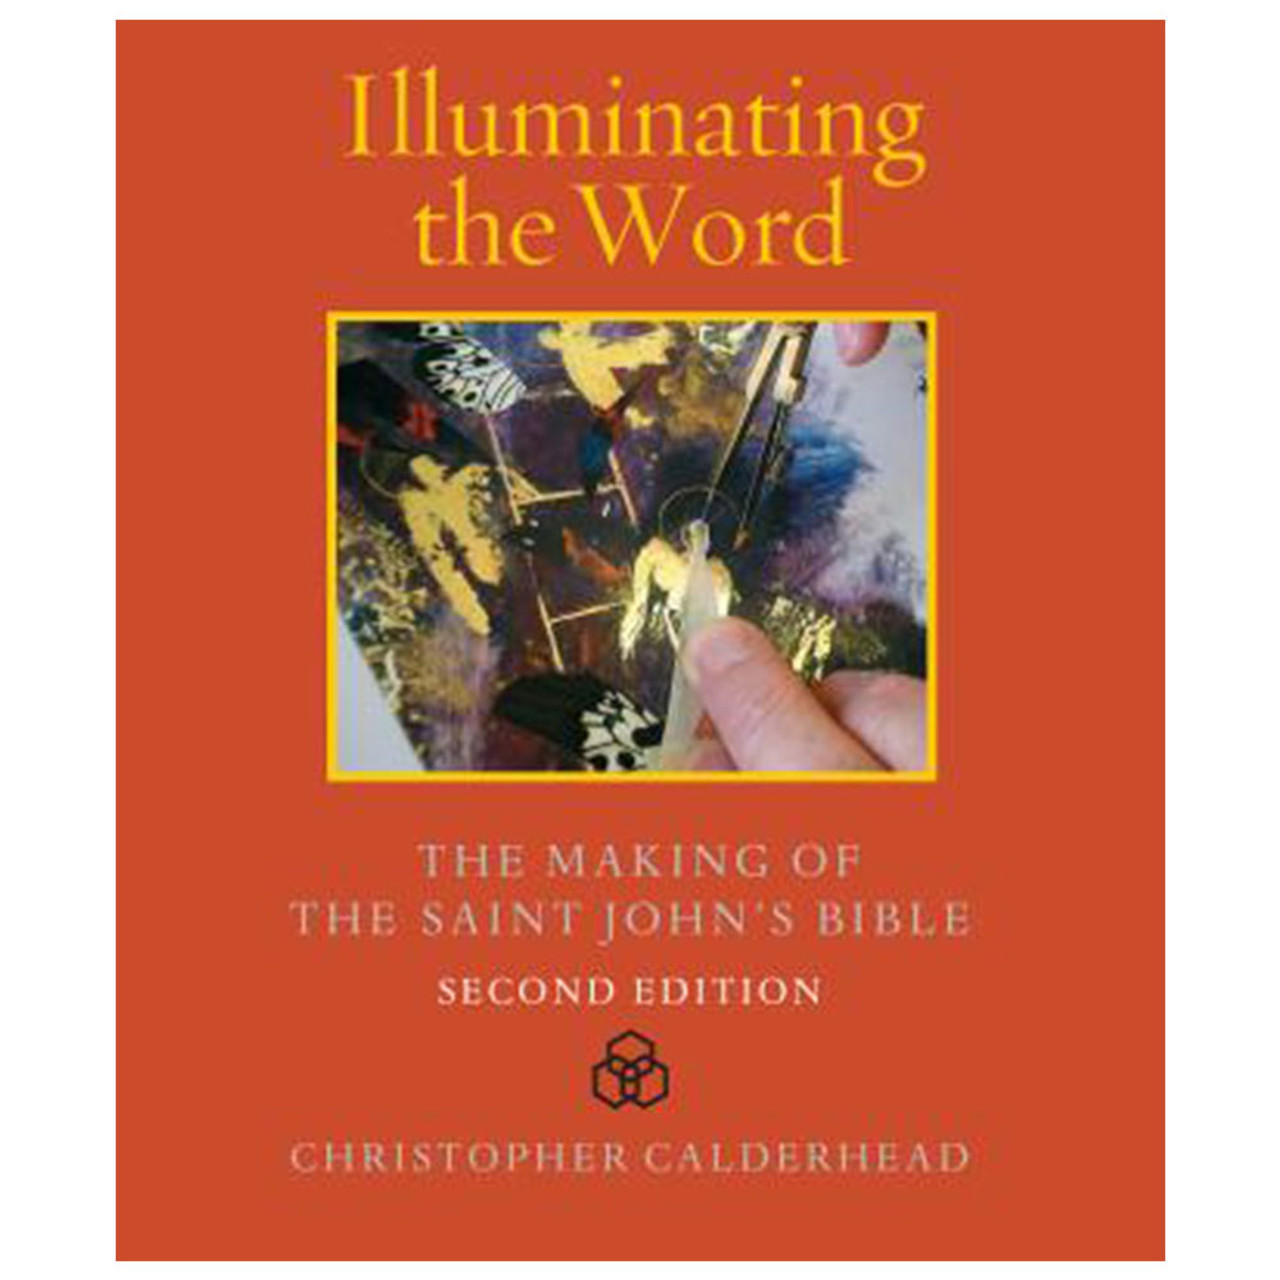 Illuminating the Word 2nd Edition St. Johns Bible